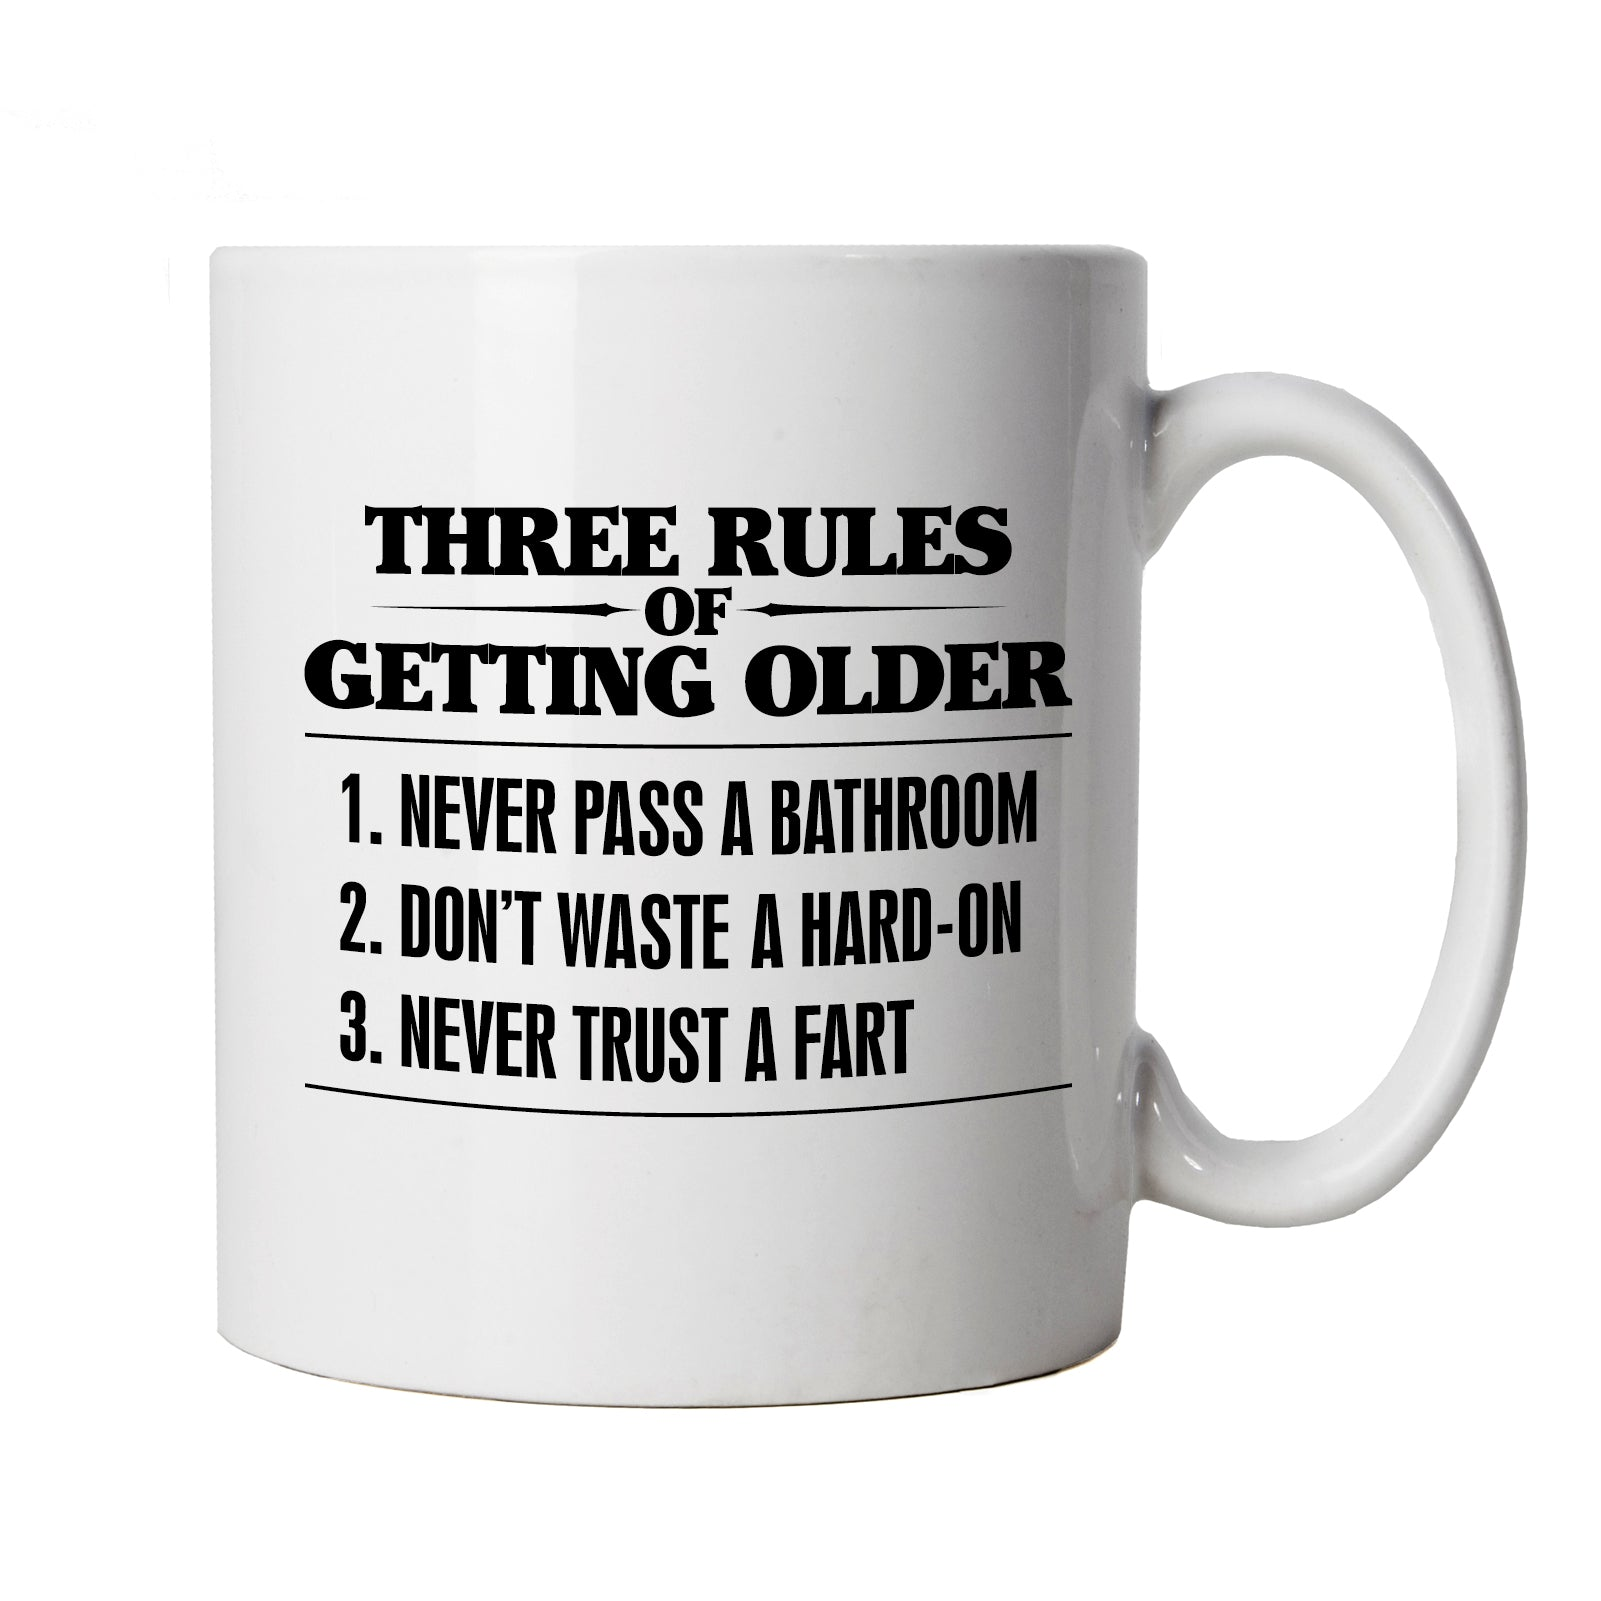 Three Rules Of Getting Older Funny Mug | Dirty Adult Rude Age Related Vulgar Naughty Joke | Humour Laughter Sarcasm Jokes Messing Comedy | Adult Joke Cup Gift